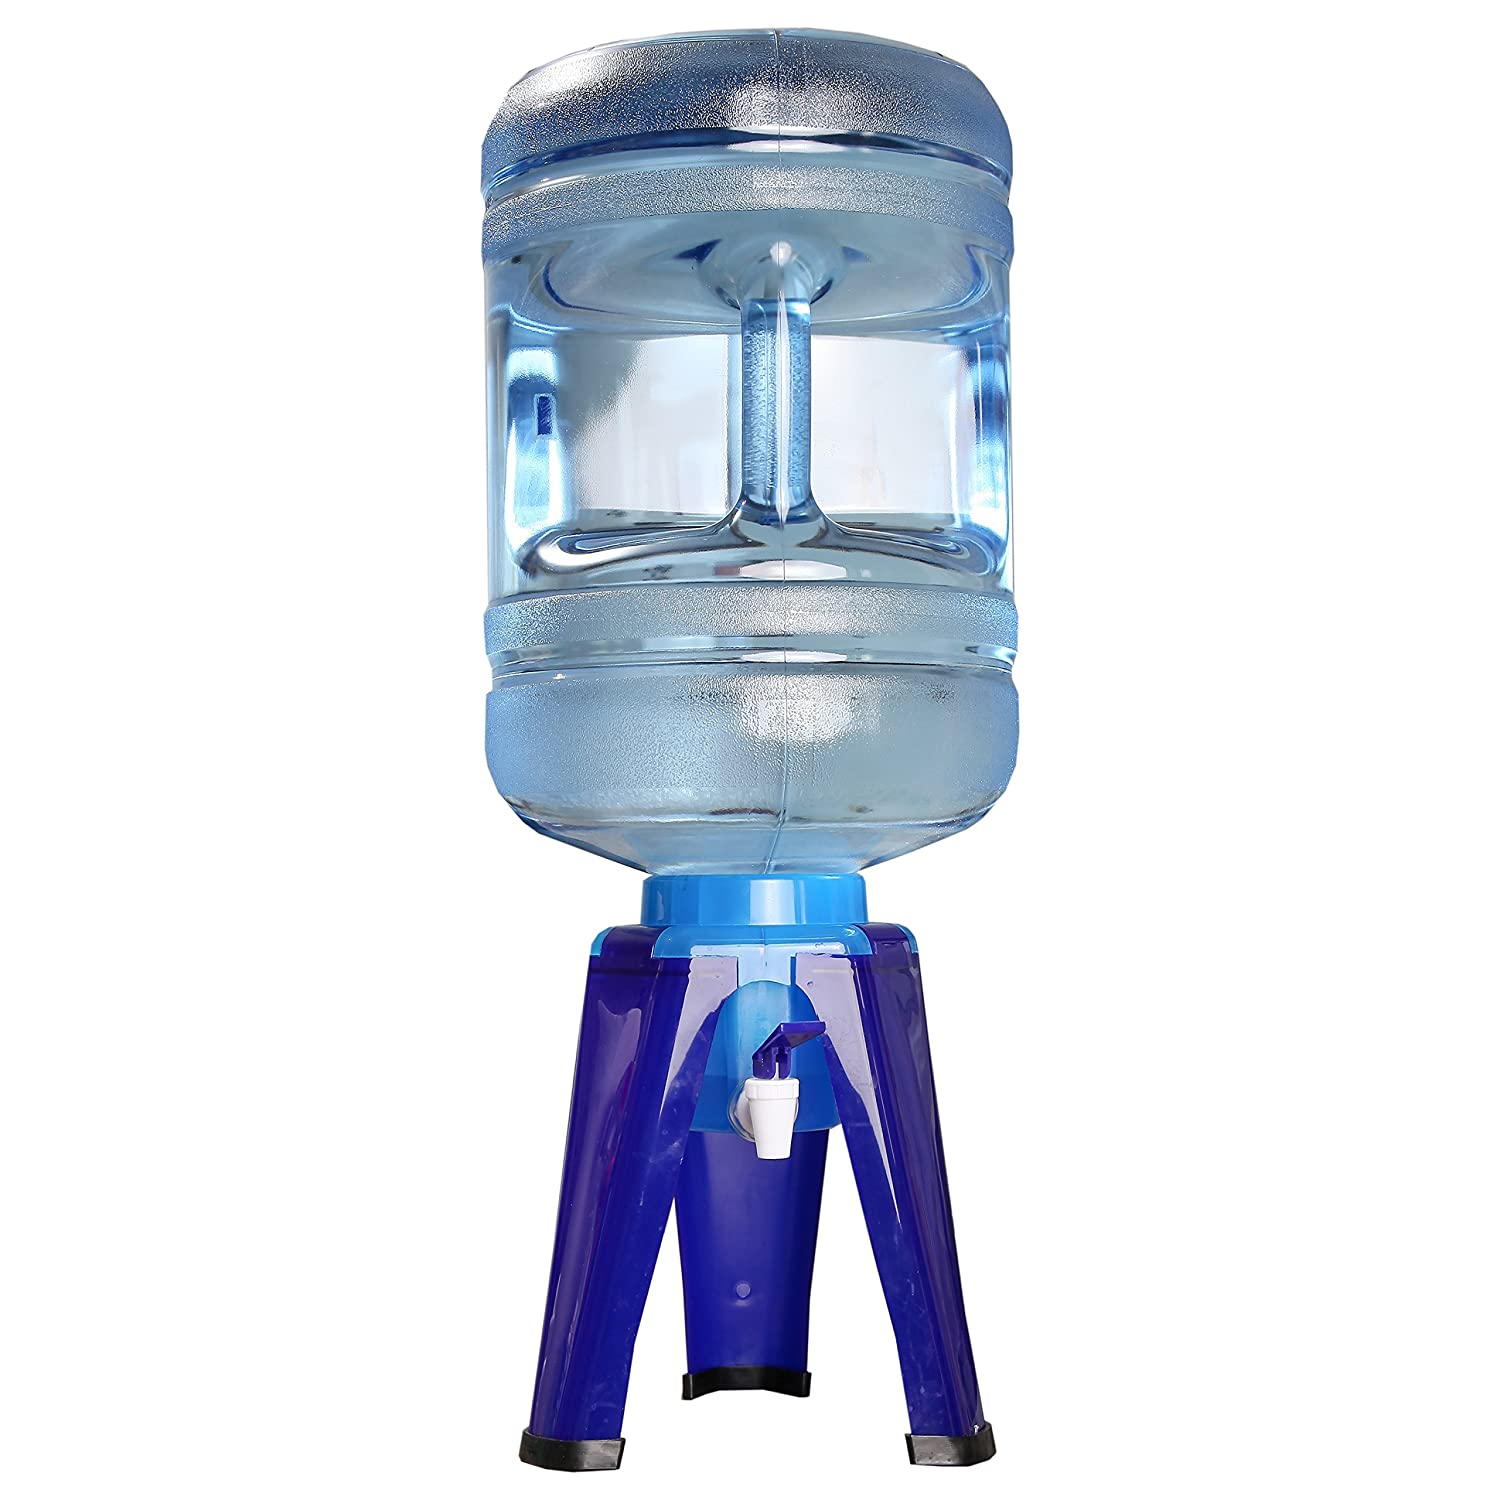 Home-x 5 Gallon Water Bottle Dispenser Stand, Water Cooler Stand